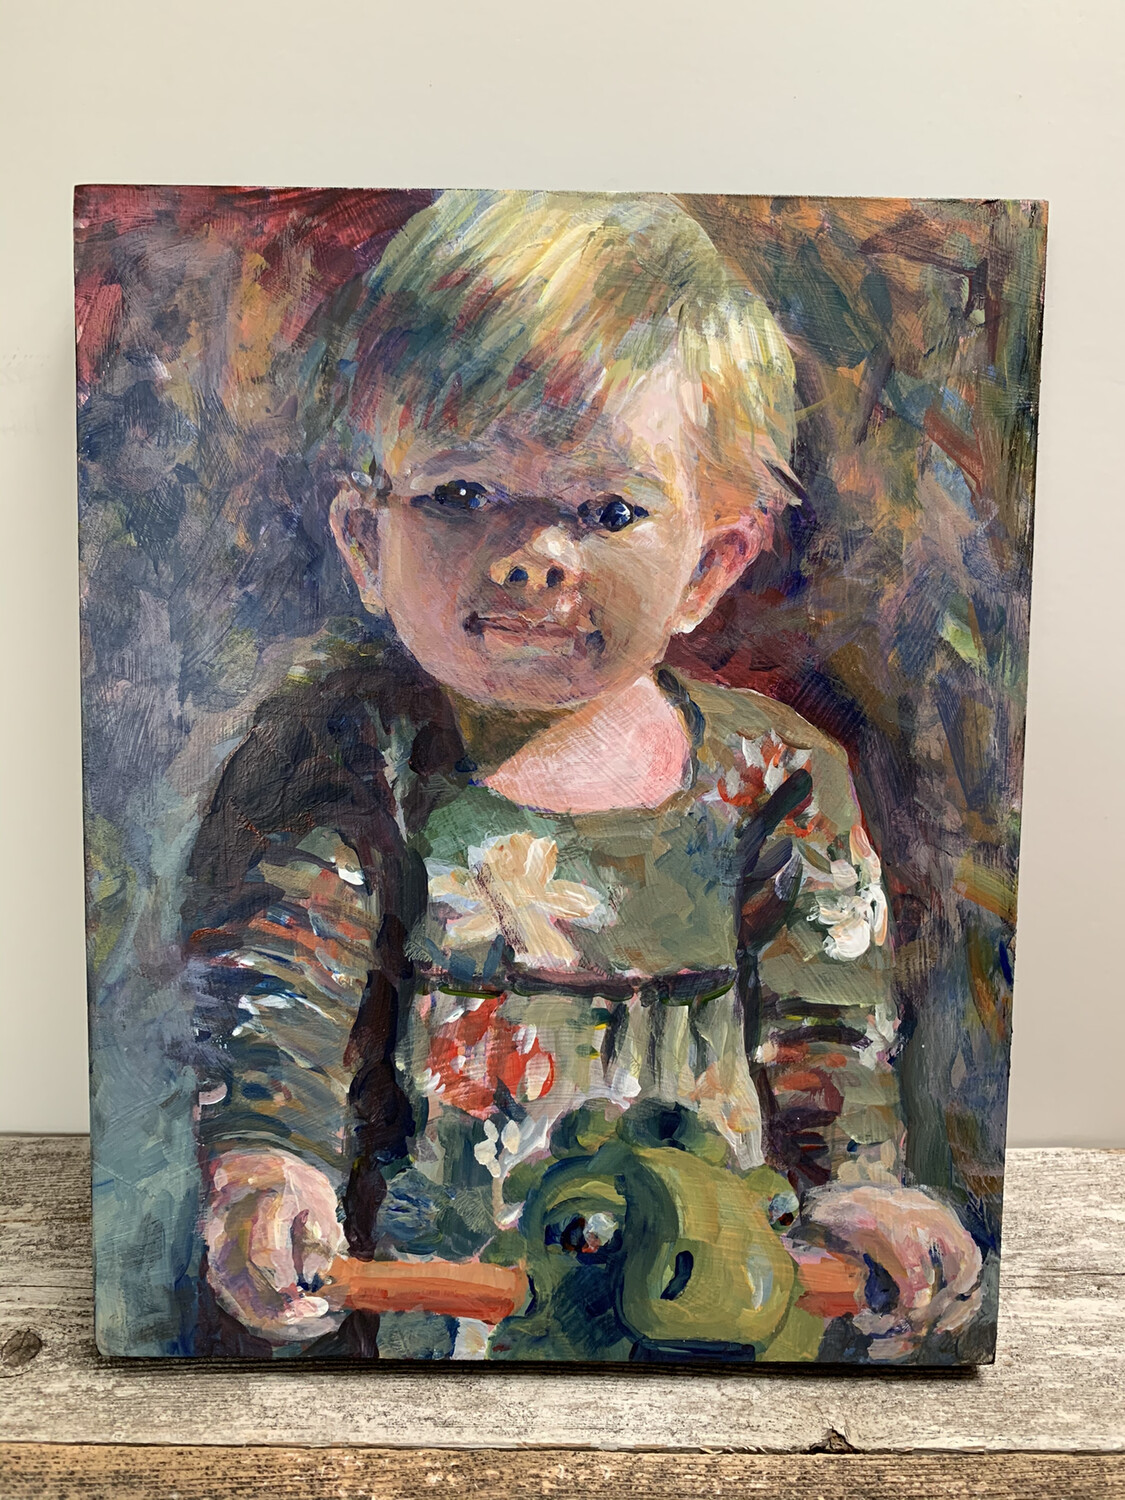 Custom Child's Portrait - 16x20 inch Acrylic or Oil Painting - Children's Portrait of Daughter Son Niece or Nephew Baby Newborn - Made To Order